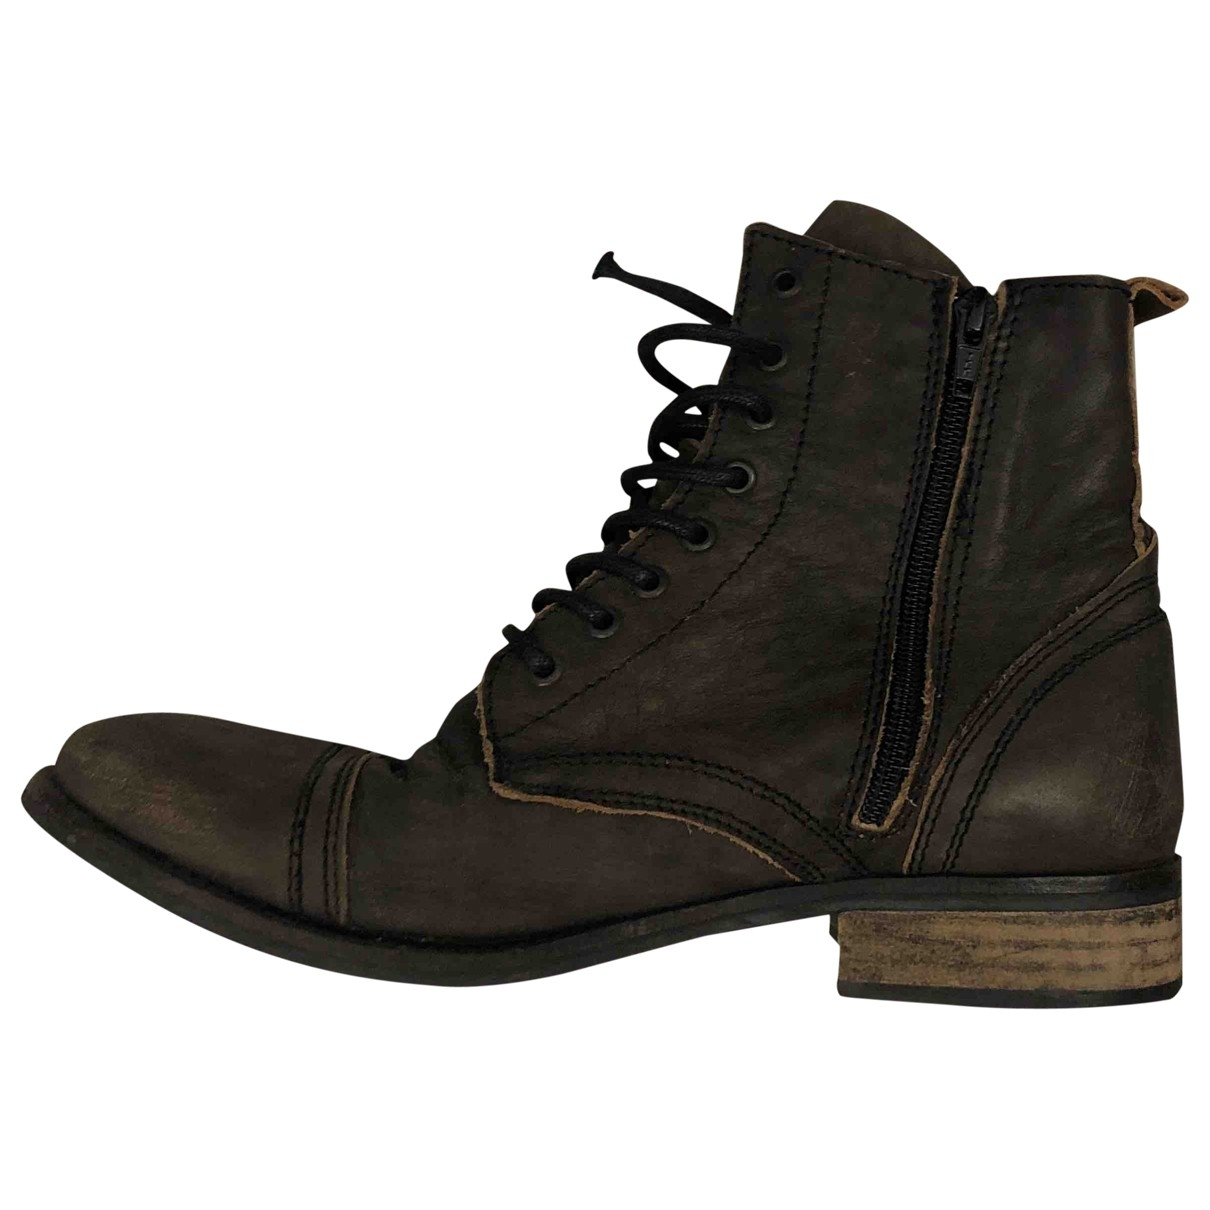 Kurt Geiger \N Brown Leather Ankle boots for Women 40 EU